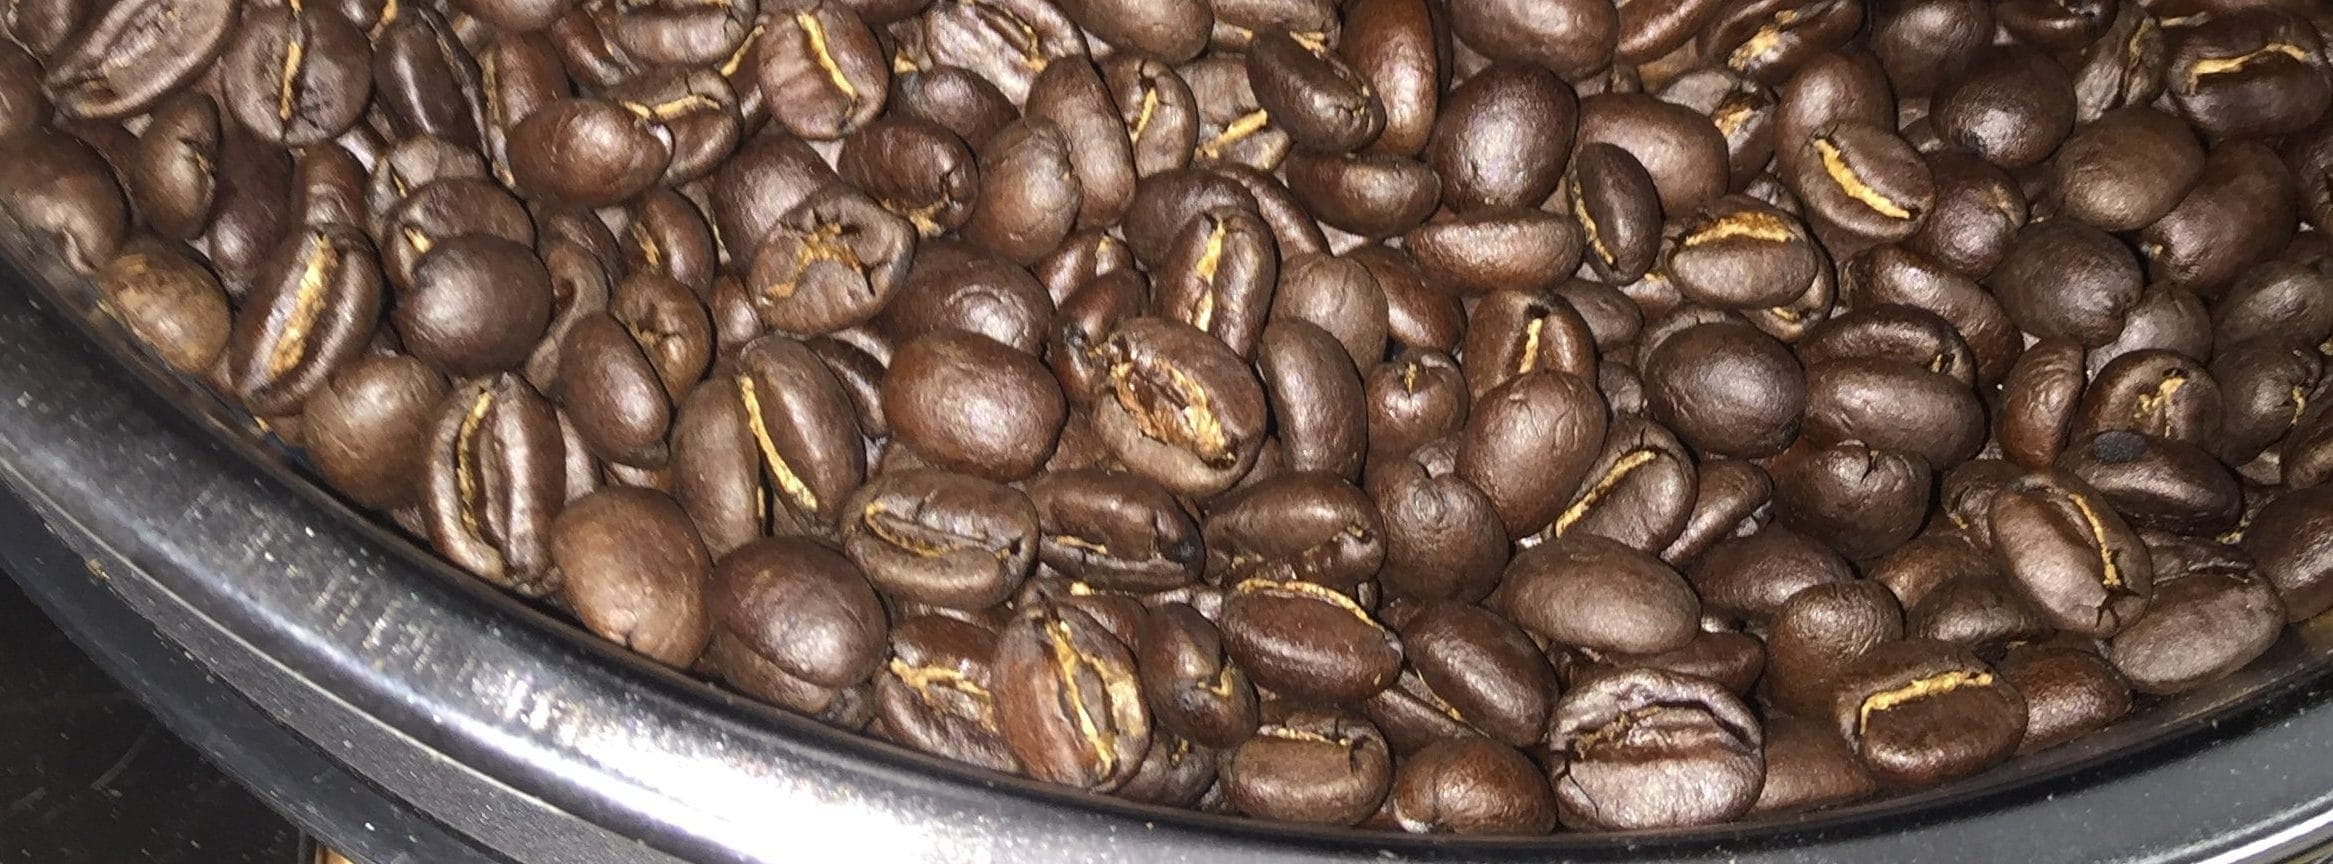 Nice dark roasted coffee